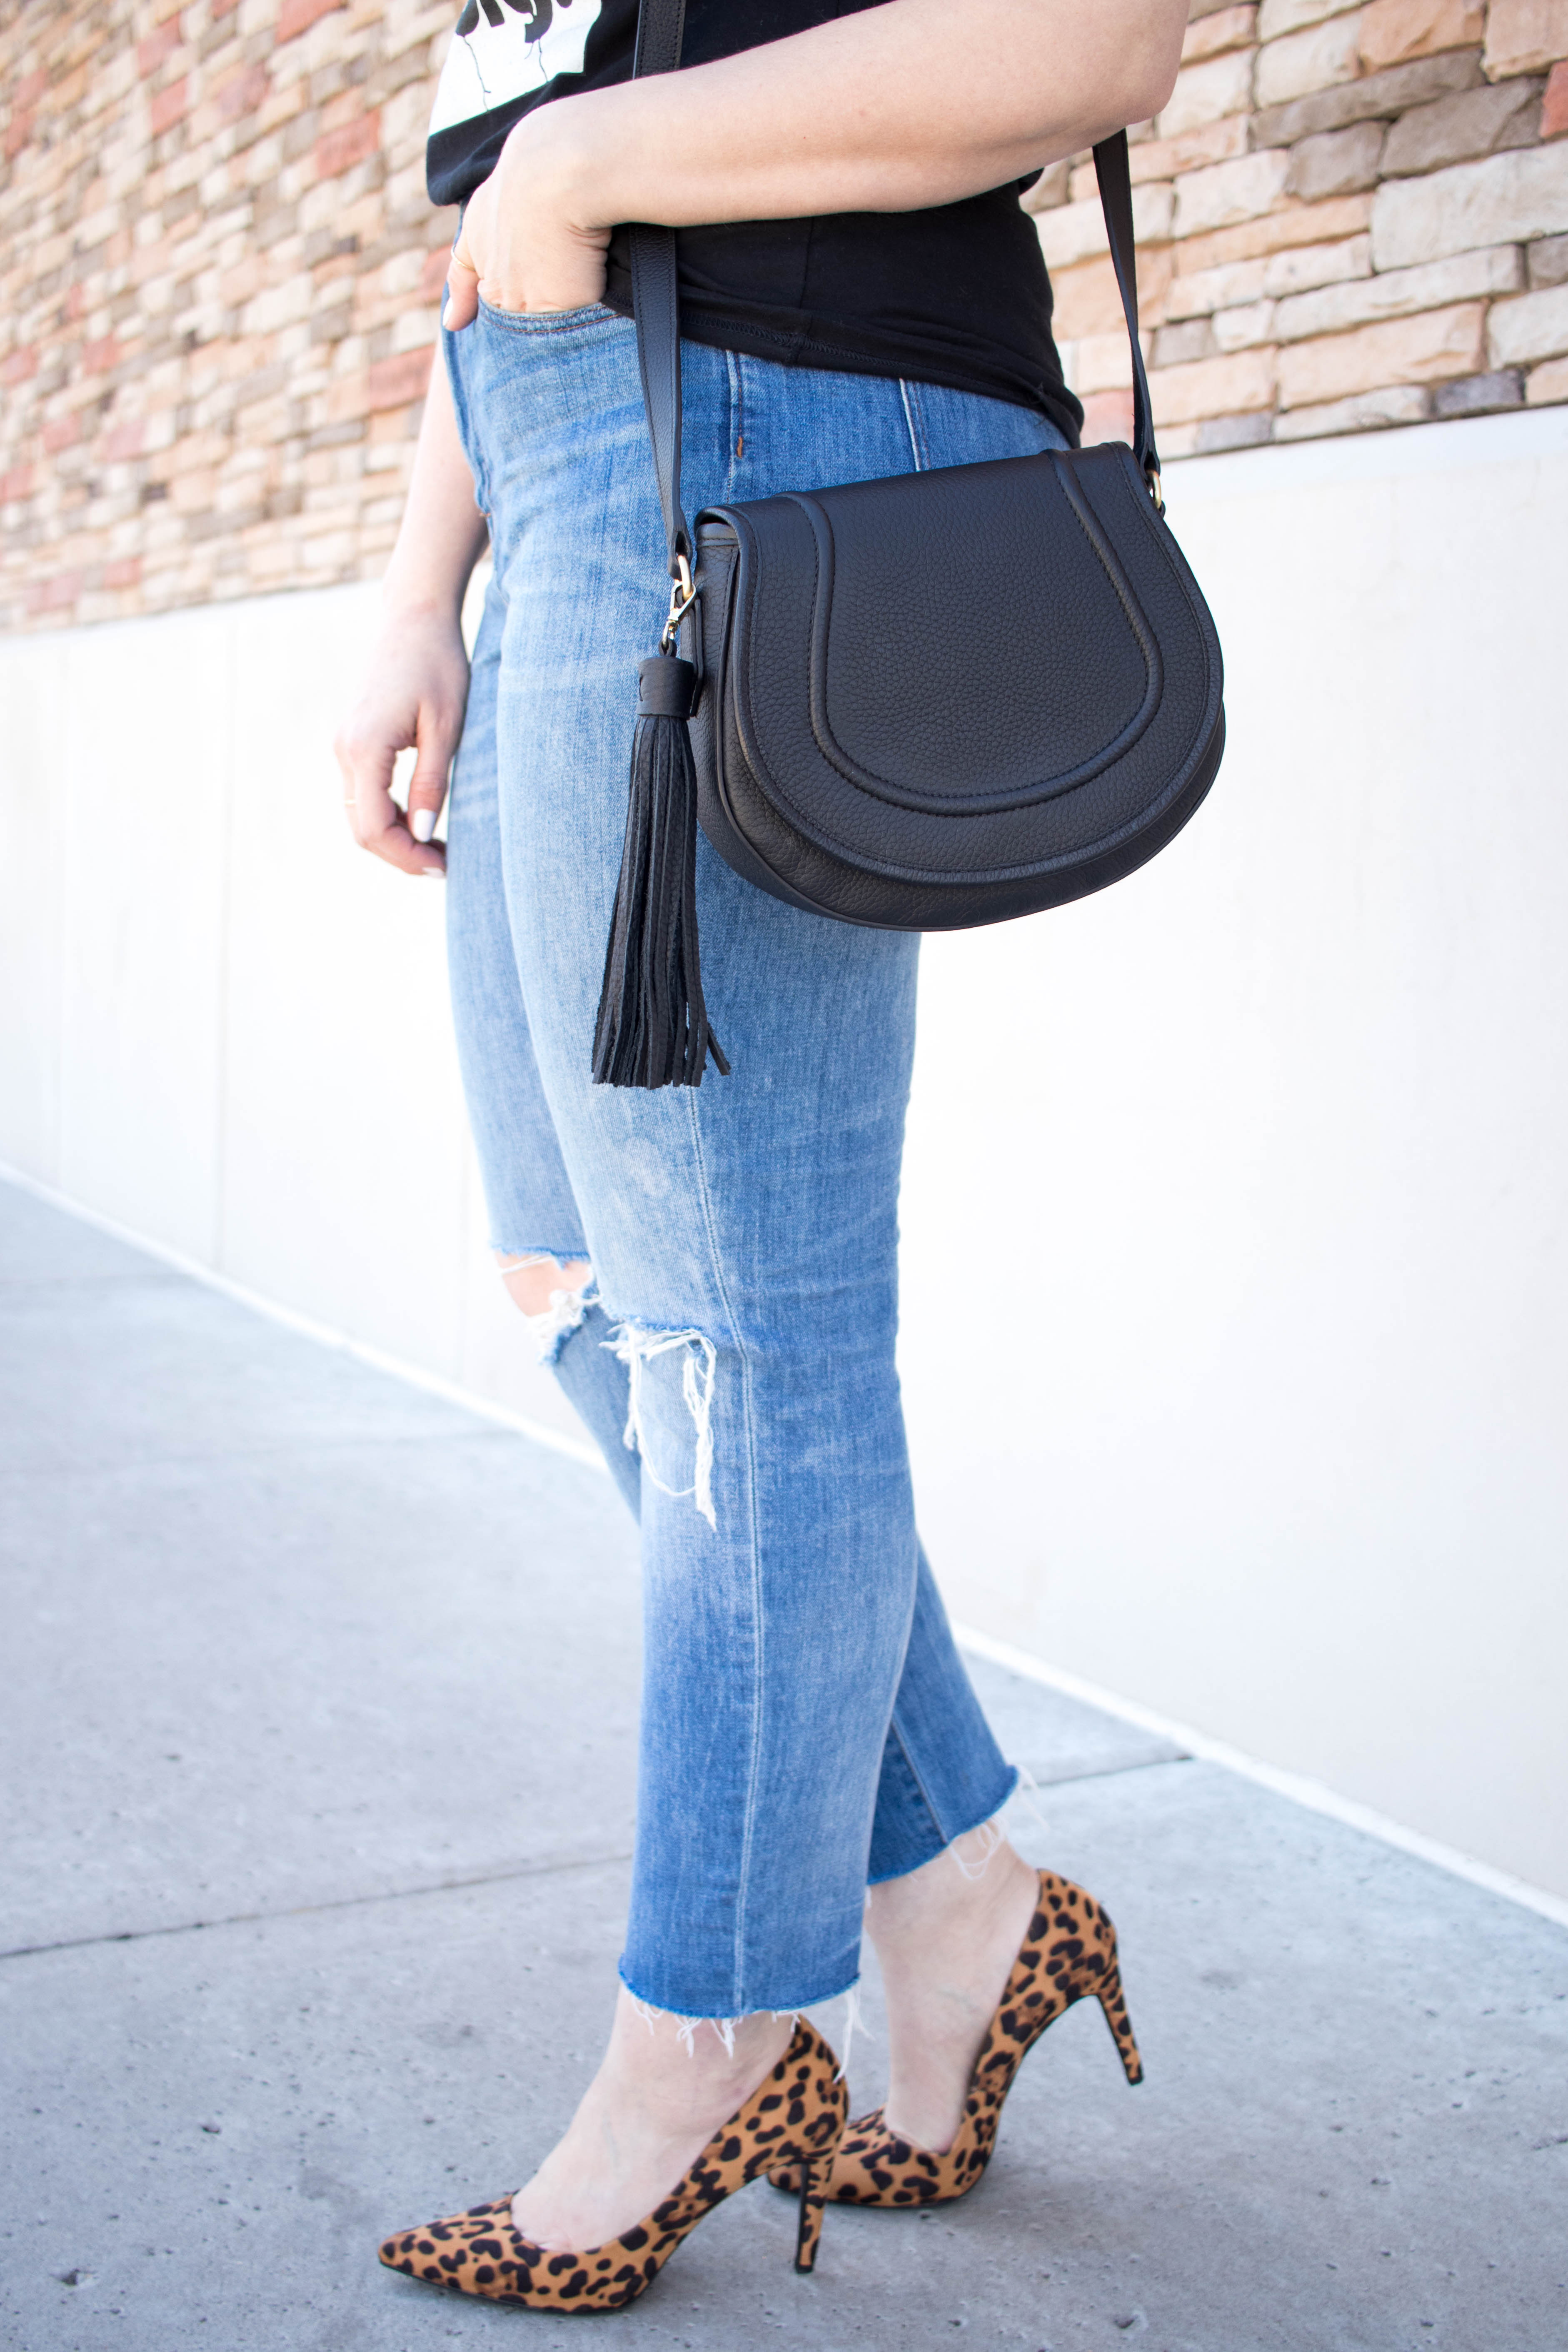 Gigi New York Jenni saddle bag #giginewyork #boyfriendjeans #leopardheels